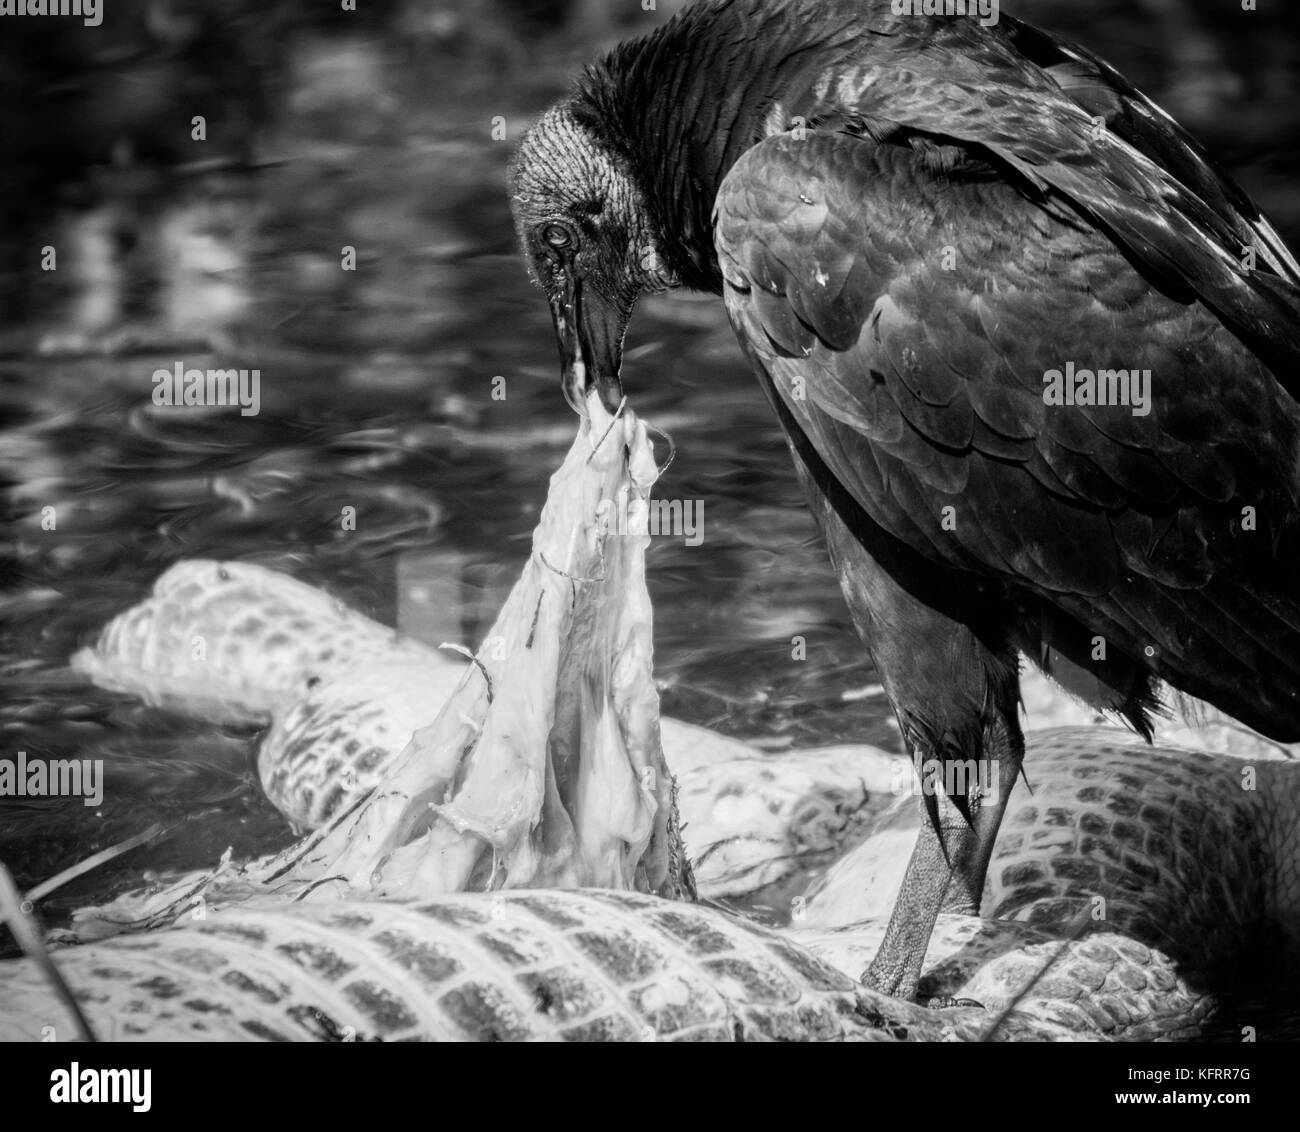 Vulture eating carrion - Stock Image